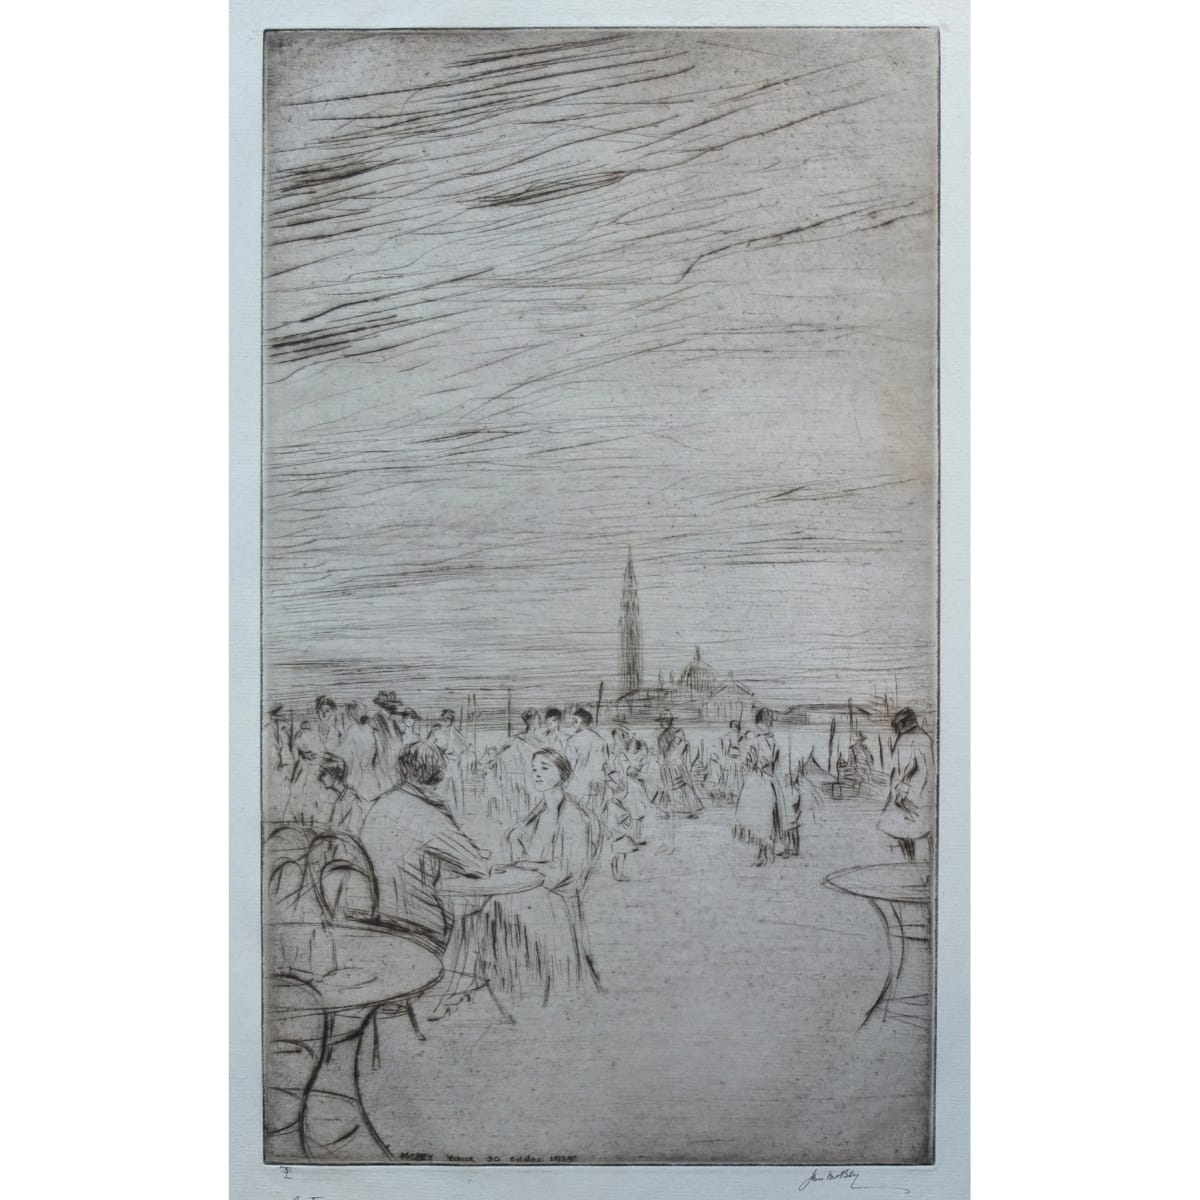 James McBey The Riva at dusk, 1925 signed, titled 'Venice' and dated 20 October 1925 in plate; signed and numbered LII in pencil to margin etching and drypoint plate size: 15 3/4 x 9 1/4 inches; sheet size: 17 1/2 x 11 3/4 inches edition of 80